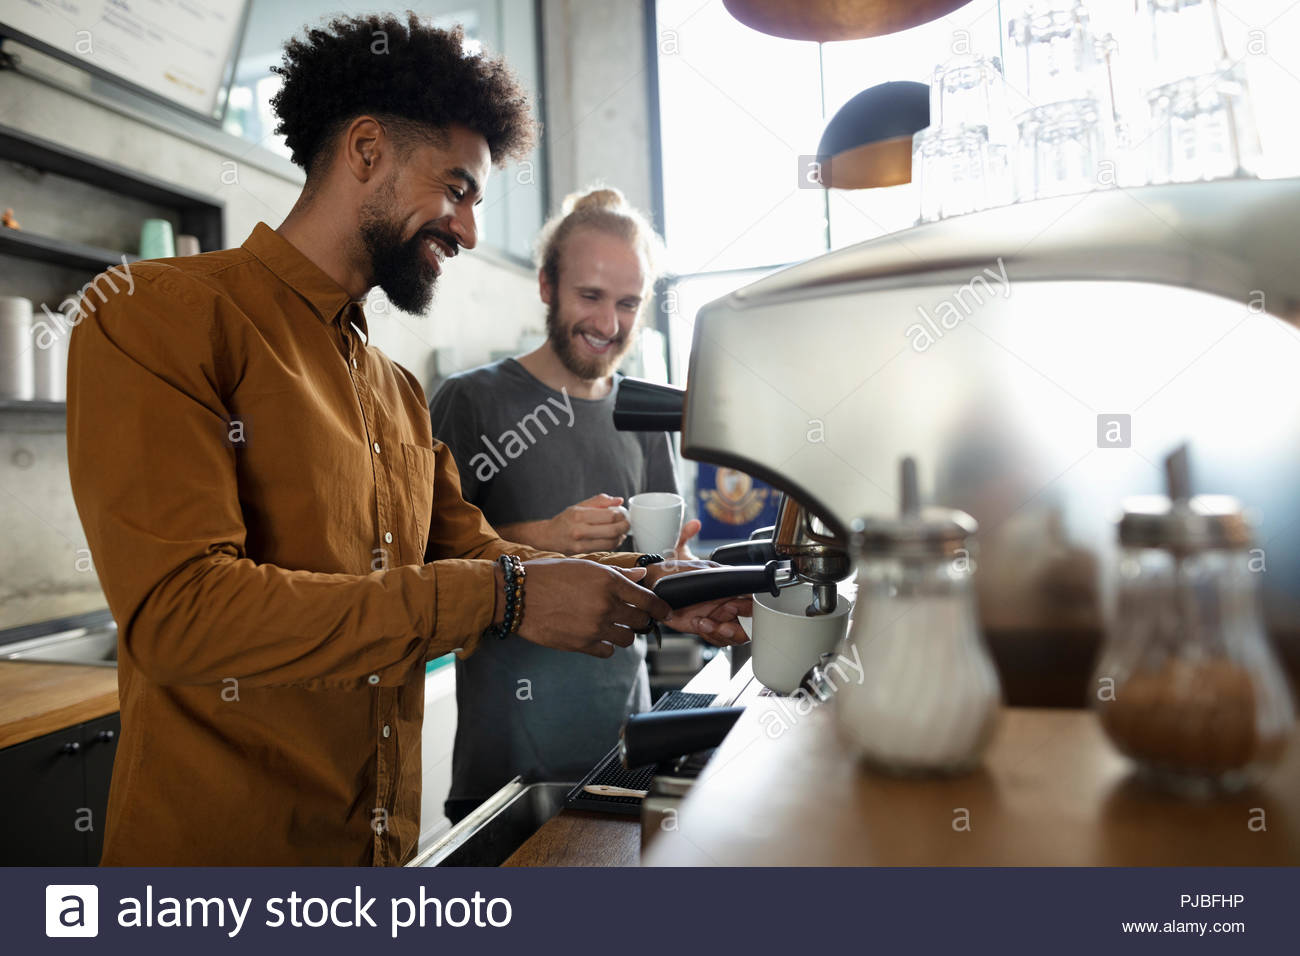 Baristas making espresso drinks in cafe - Stock Image